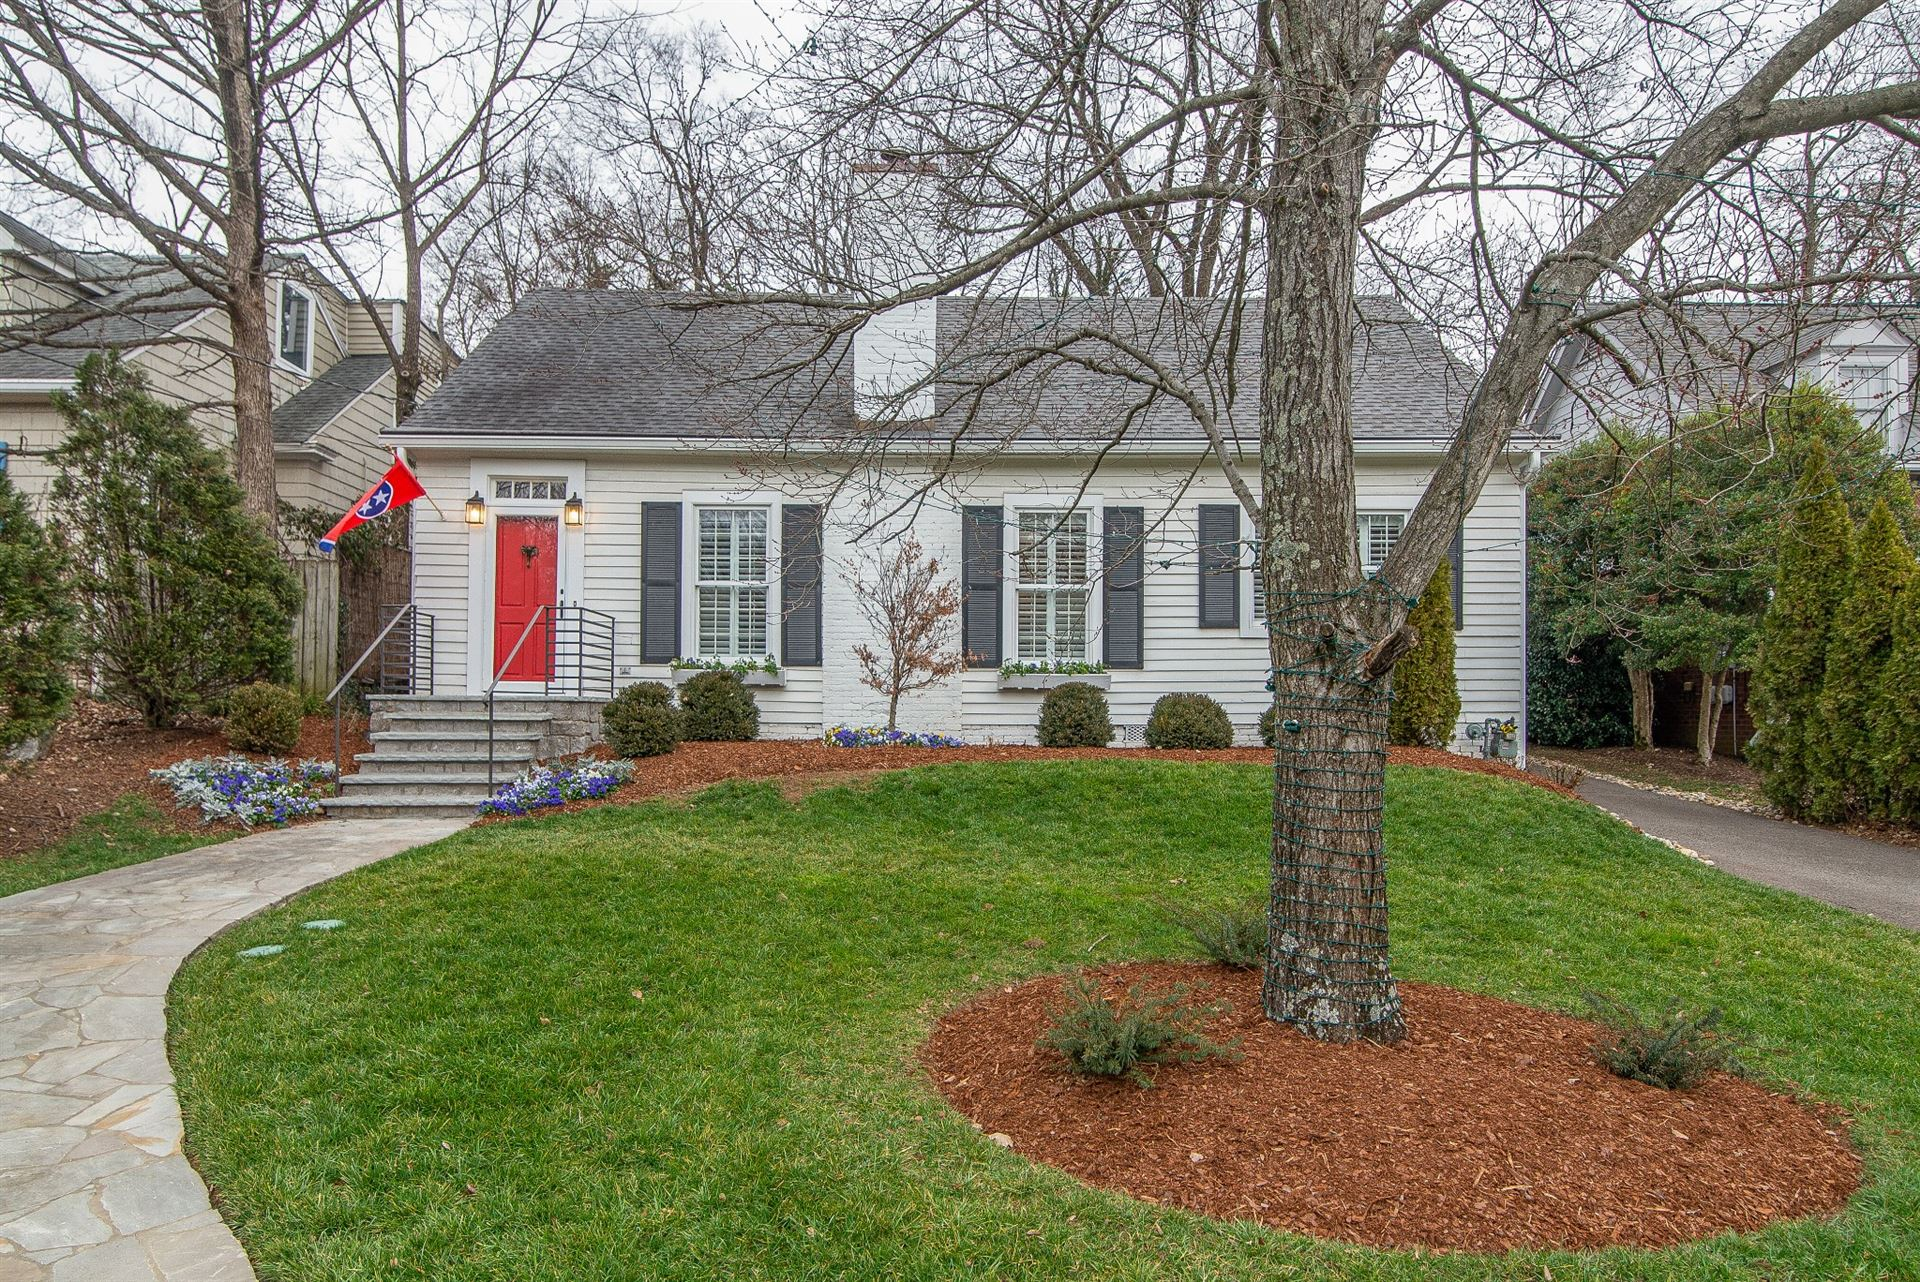 414 Fairfax Ave, Nashville, TN 37212 - MLS#: 2219584